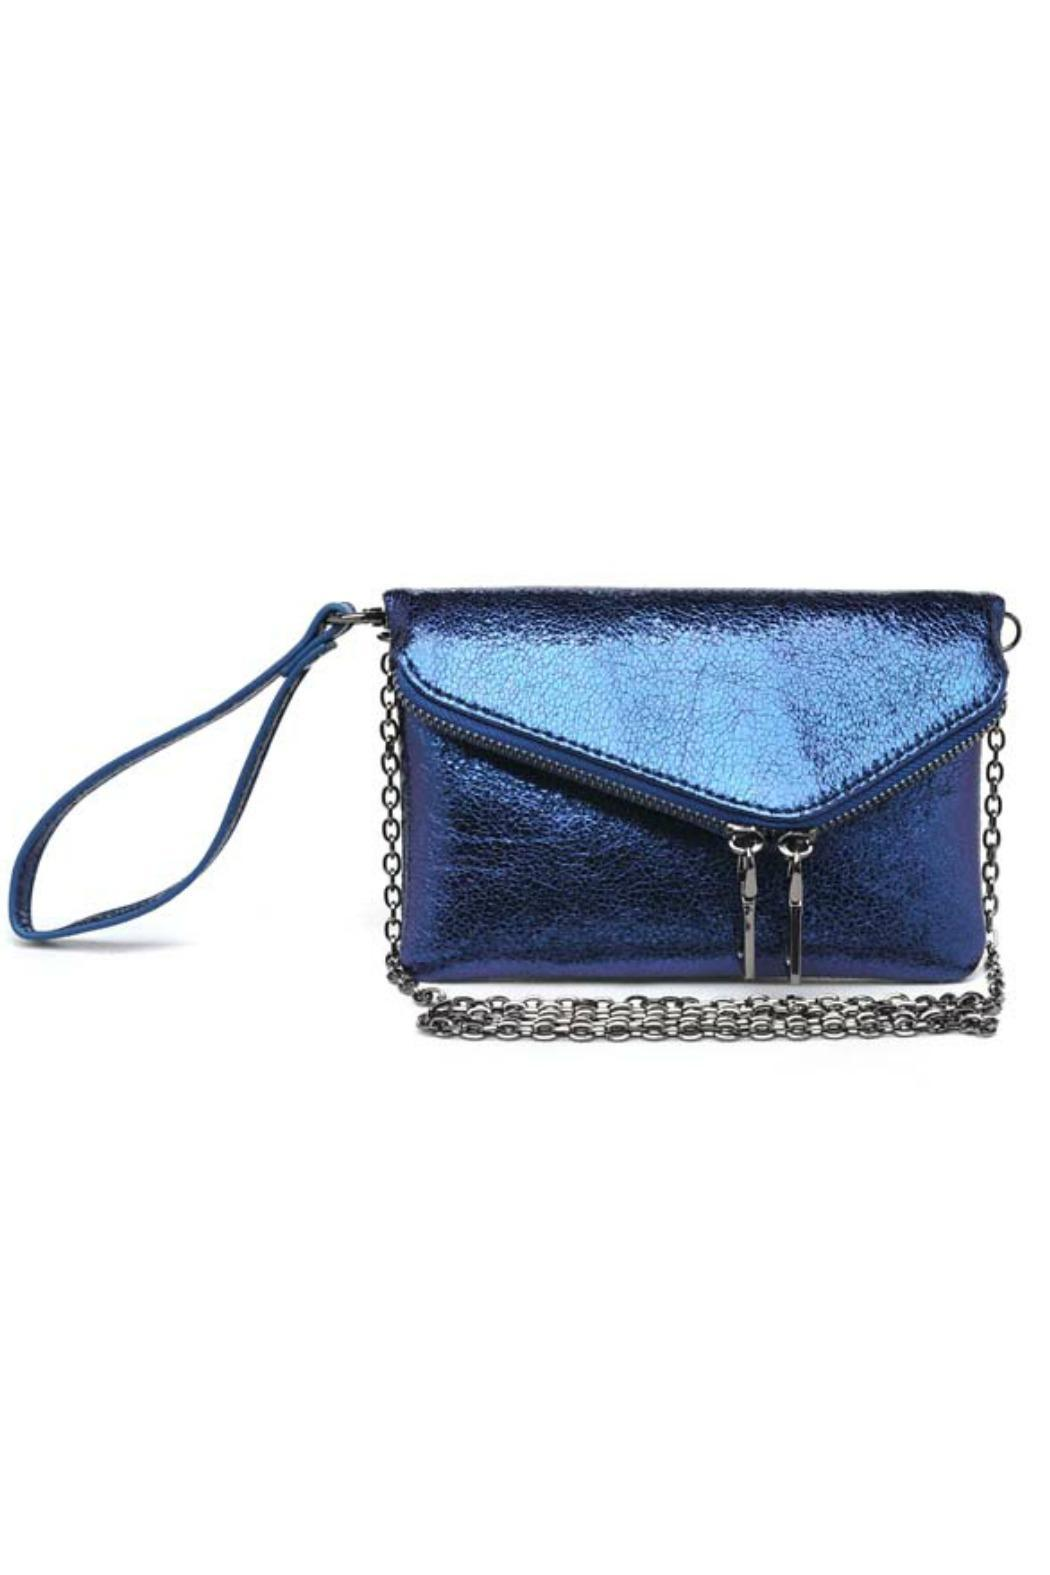 Urban Expressions Lucy Metallic Clutch - Main Image